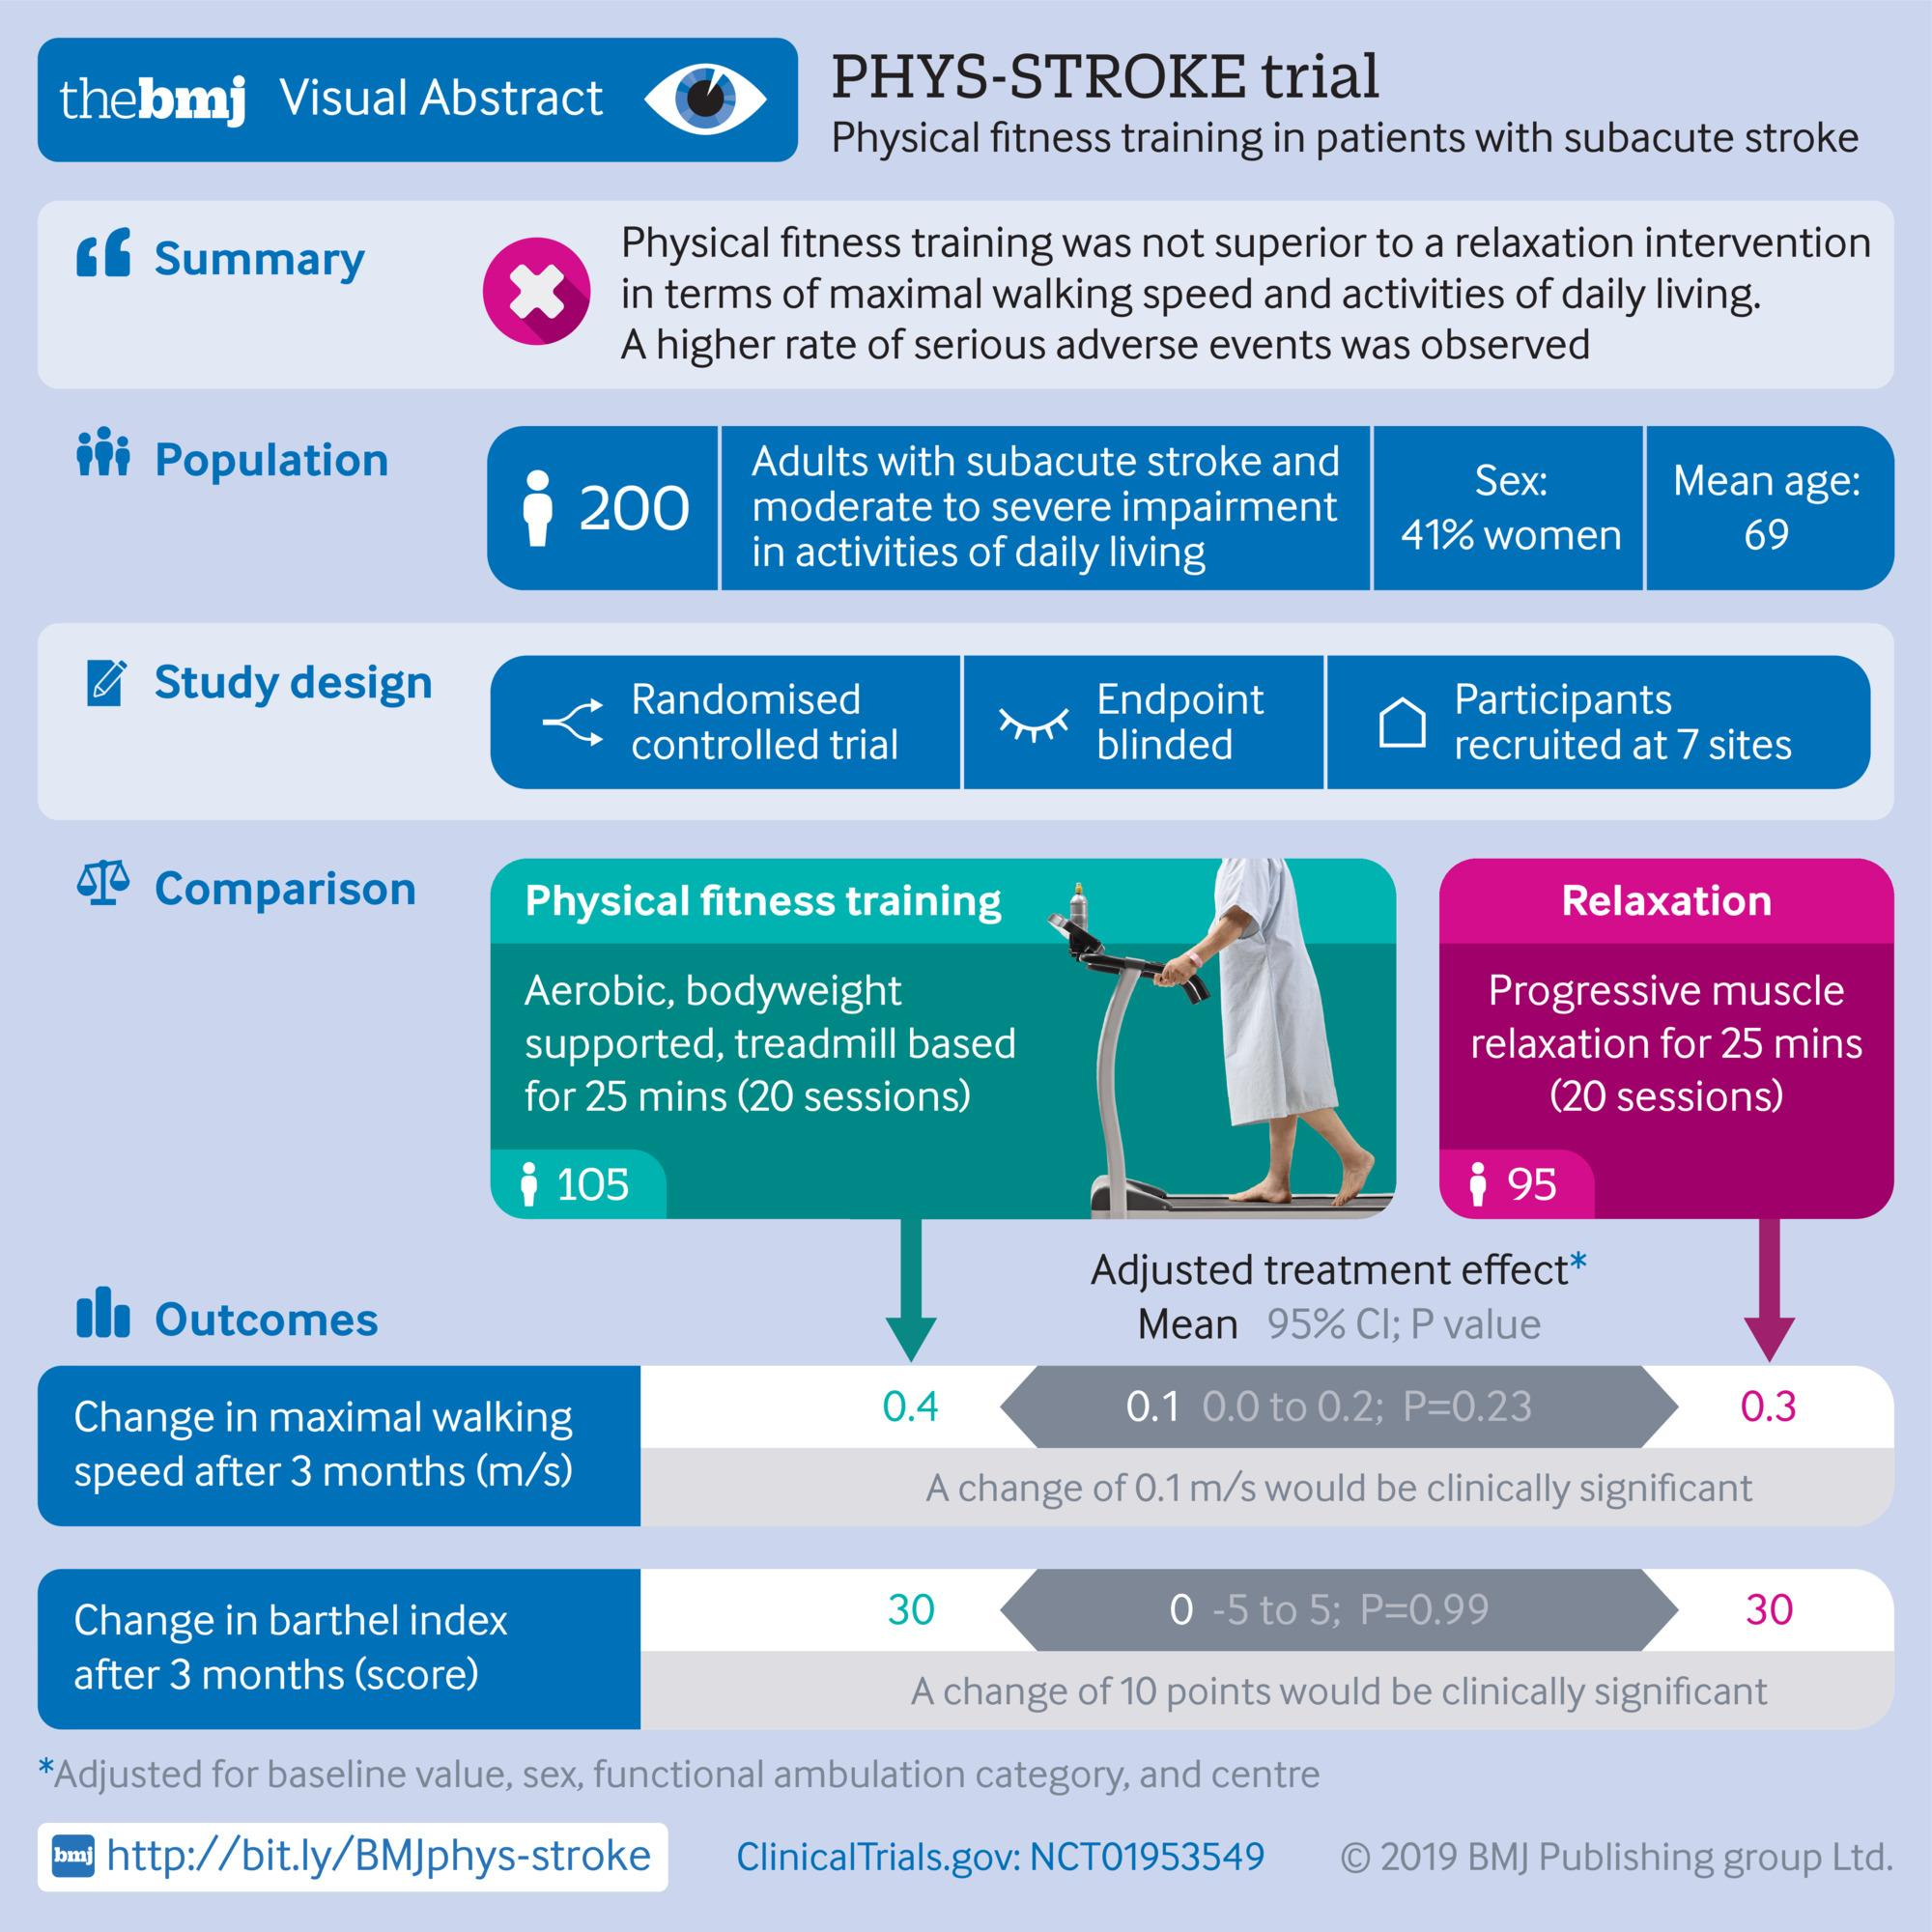 Visual abstract reporting on a trial of physical fitness training in patients with subacute stroke